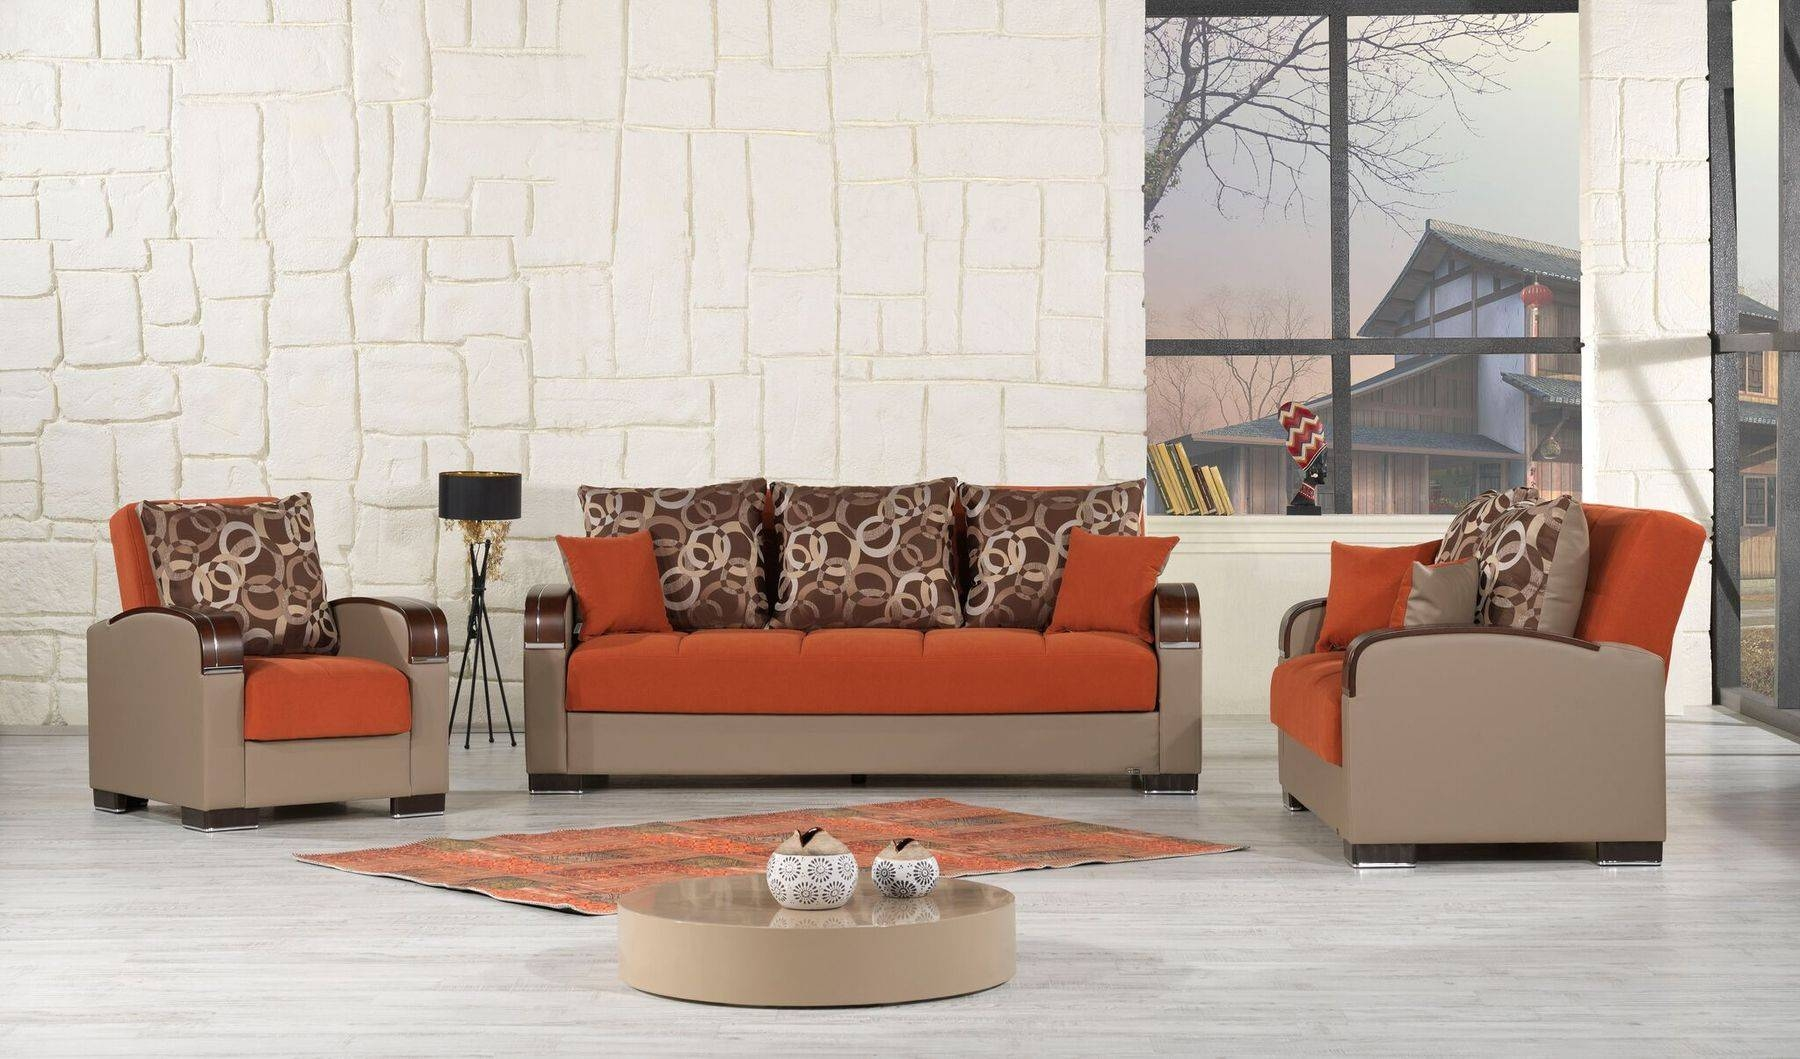 Mobimax Orange Sofa Mobimax Casamode Furniture Fabric Sofas At for Fabric Sofas (Image 22 of 30)